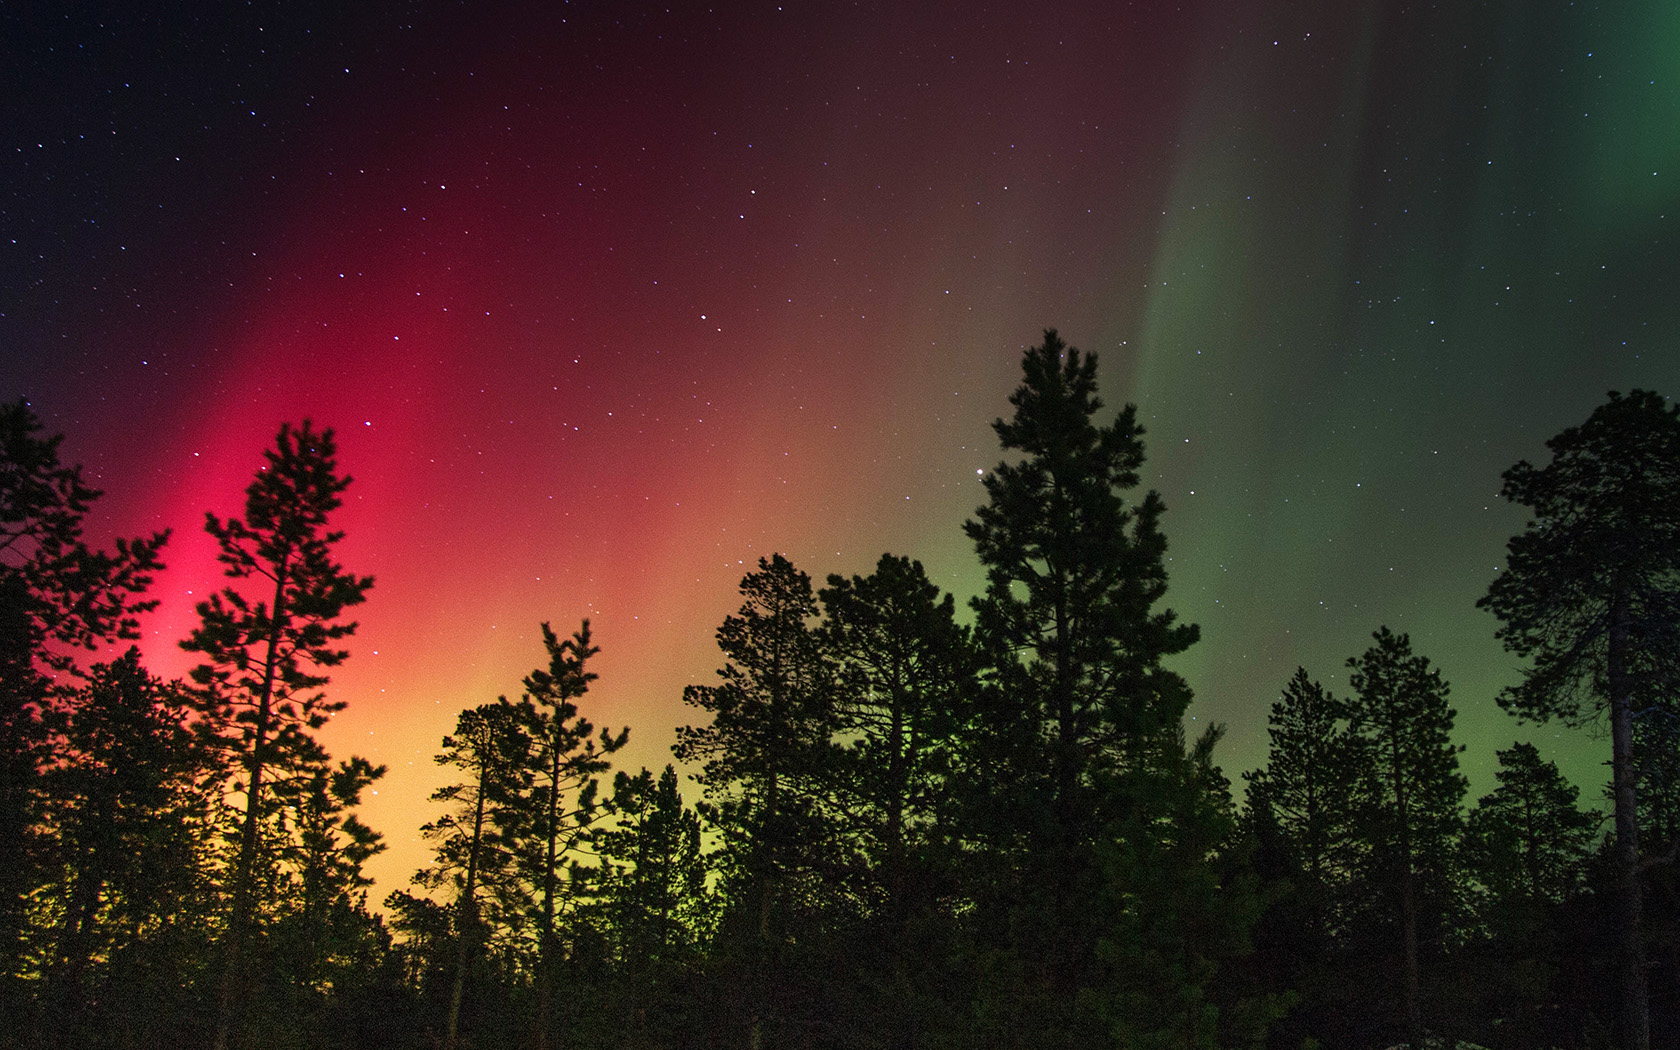 New Apple Wallpapers Iphone 7 Wallpaper For Desktop Laptop Nl46 Snow Sky Aurora Night